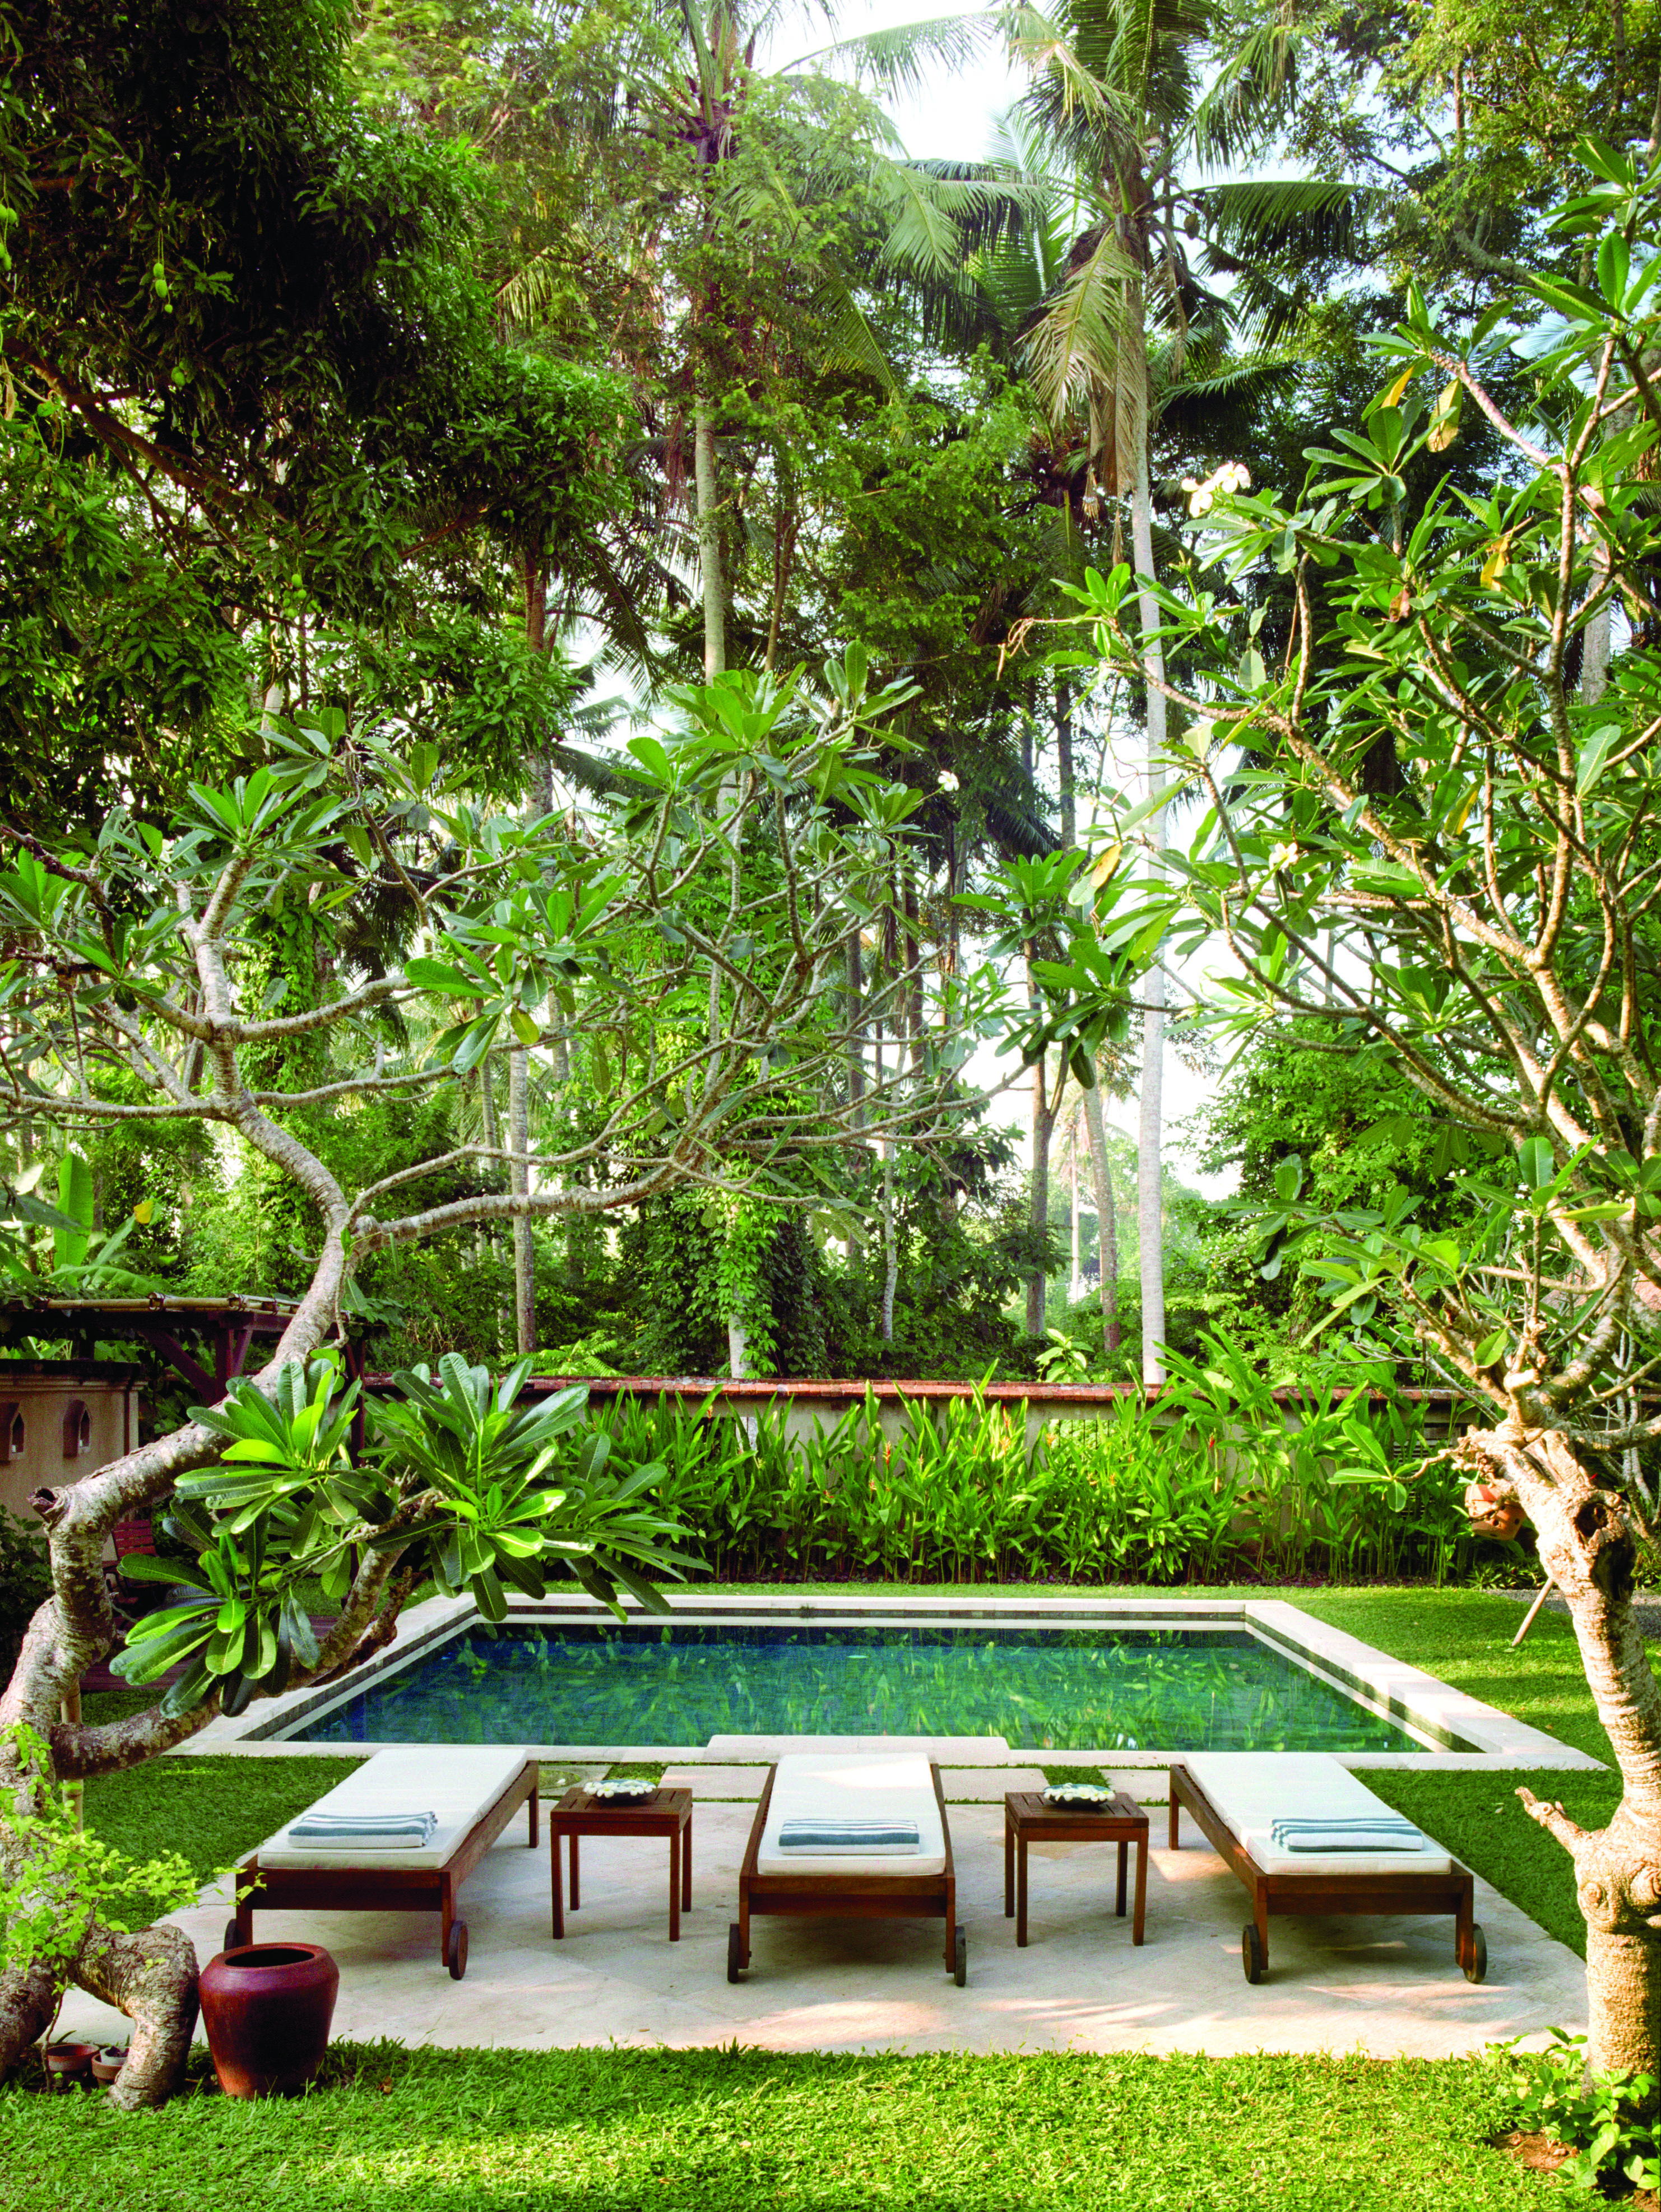 Above Ground Pool Ideas To Beautify A Prefab Swimming Pool And Give It A Custom Look Backyard Pool Pool Landscaping Backyard Pool Designs